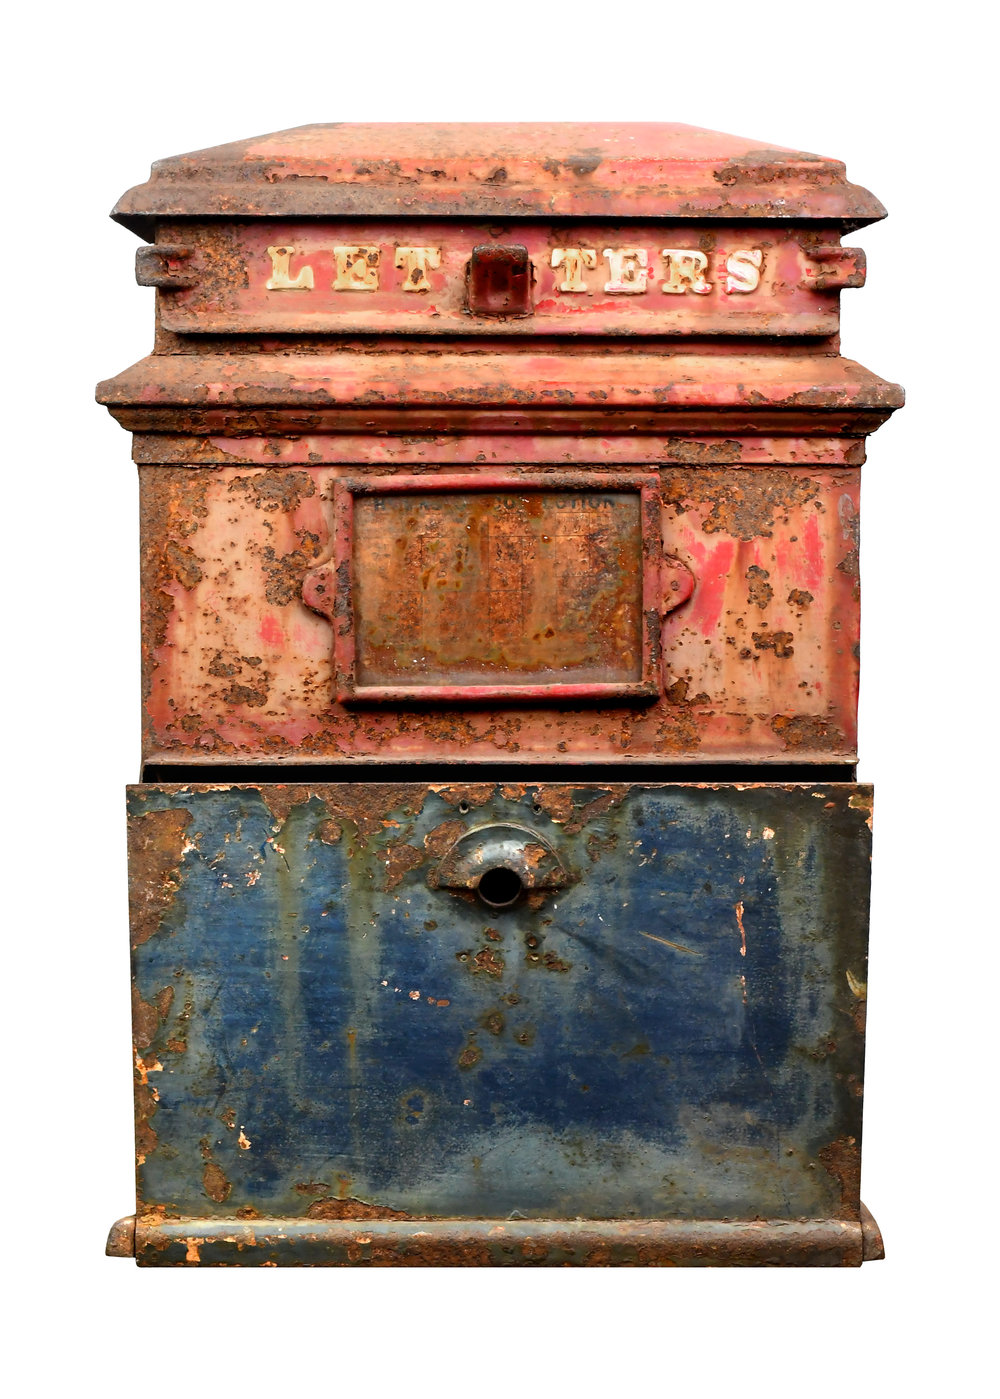 47478-iron-mailbox-front-full-view.jpg